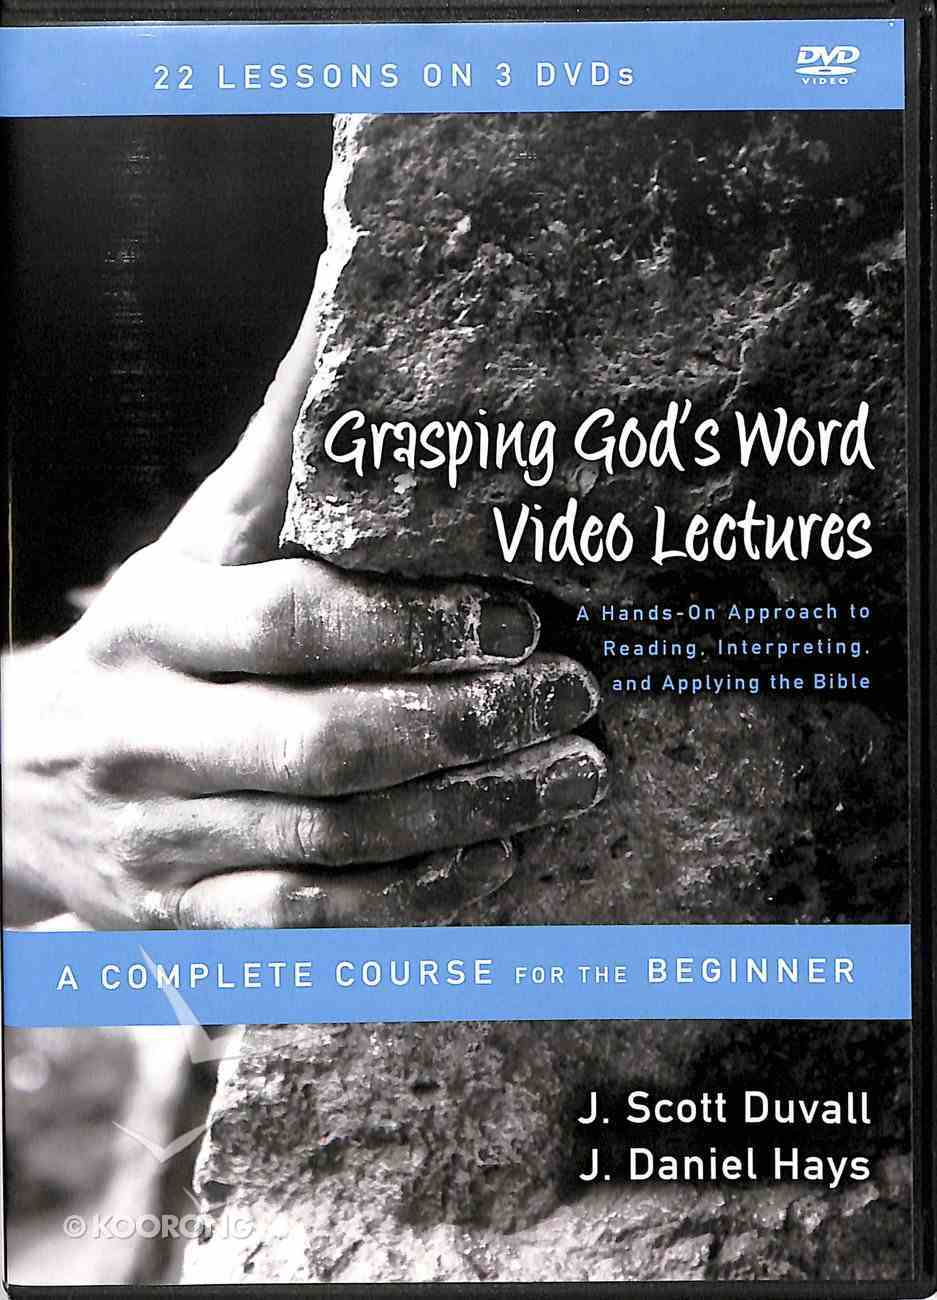 Grasping God's Word Video Lectures (Zondervan Academic Course Dvd Study Series) DVD